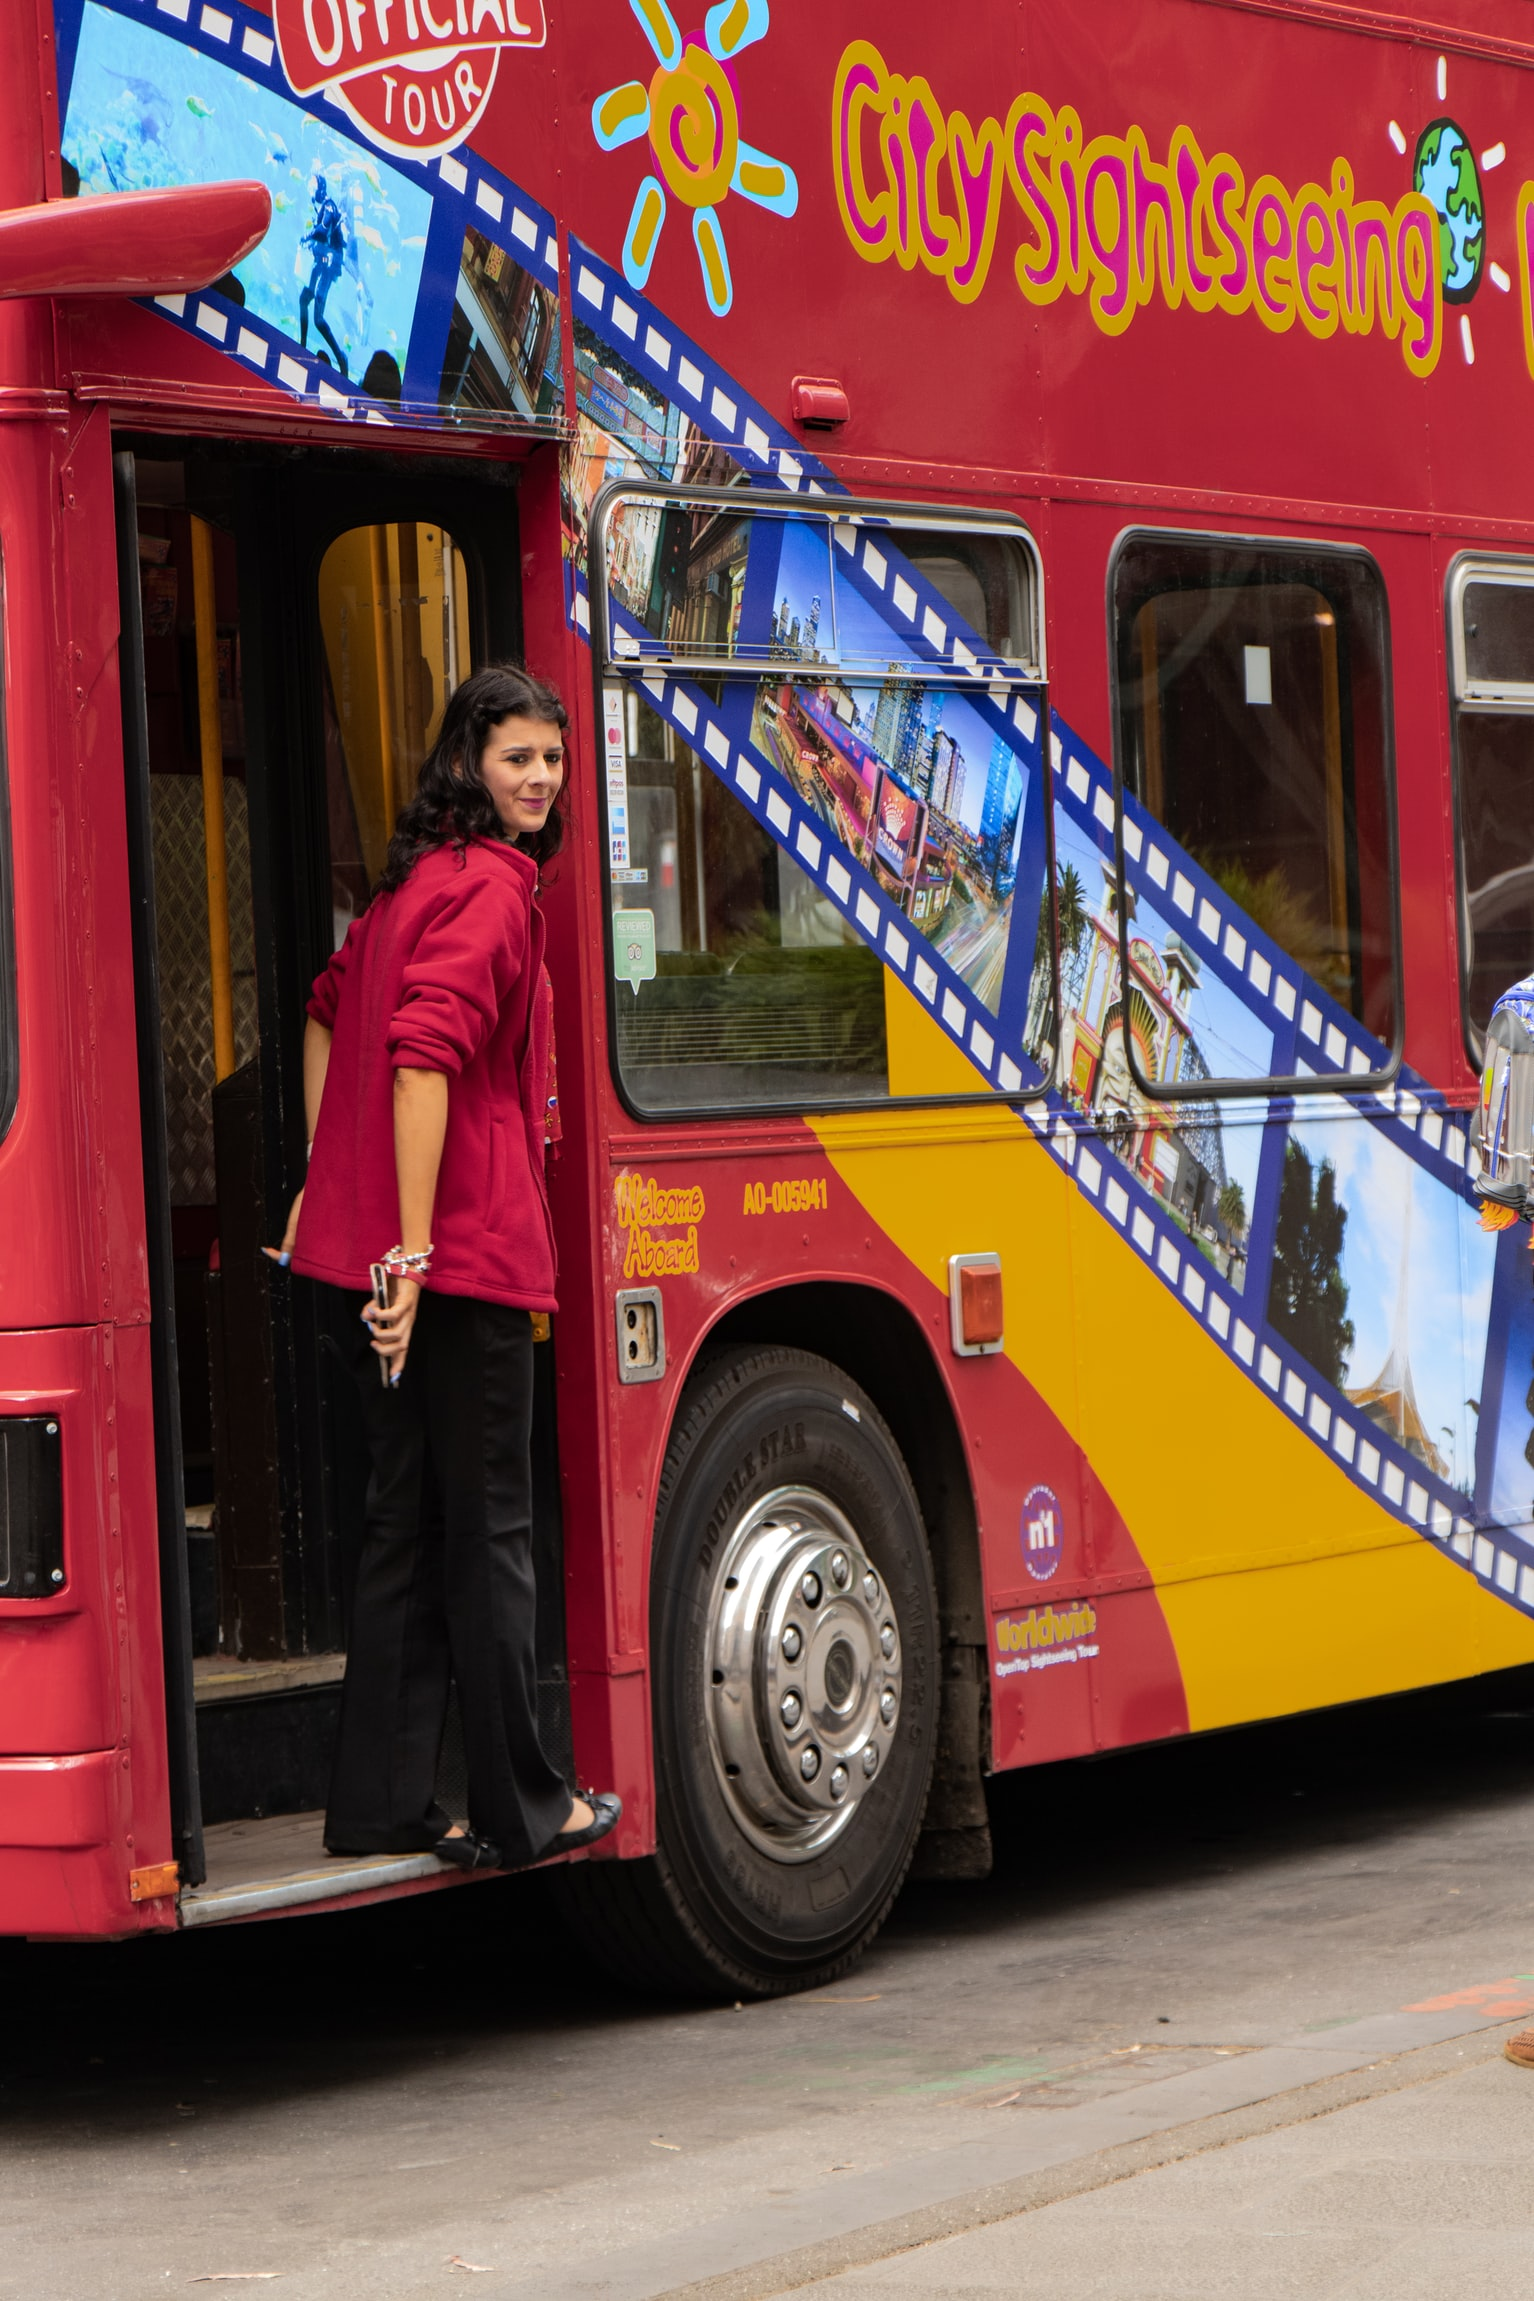 Tourist on a City Sightseeing Bus